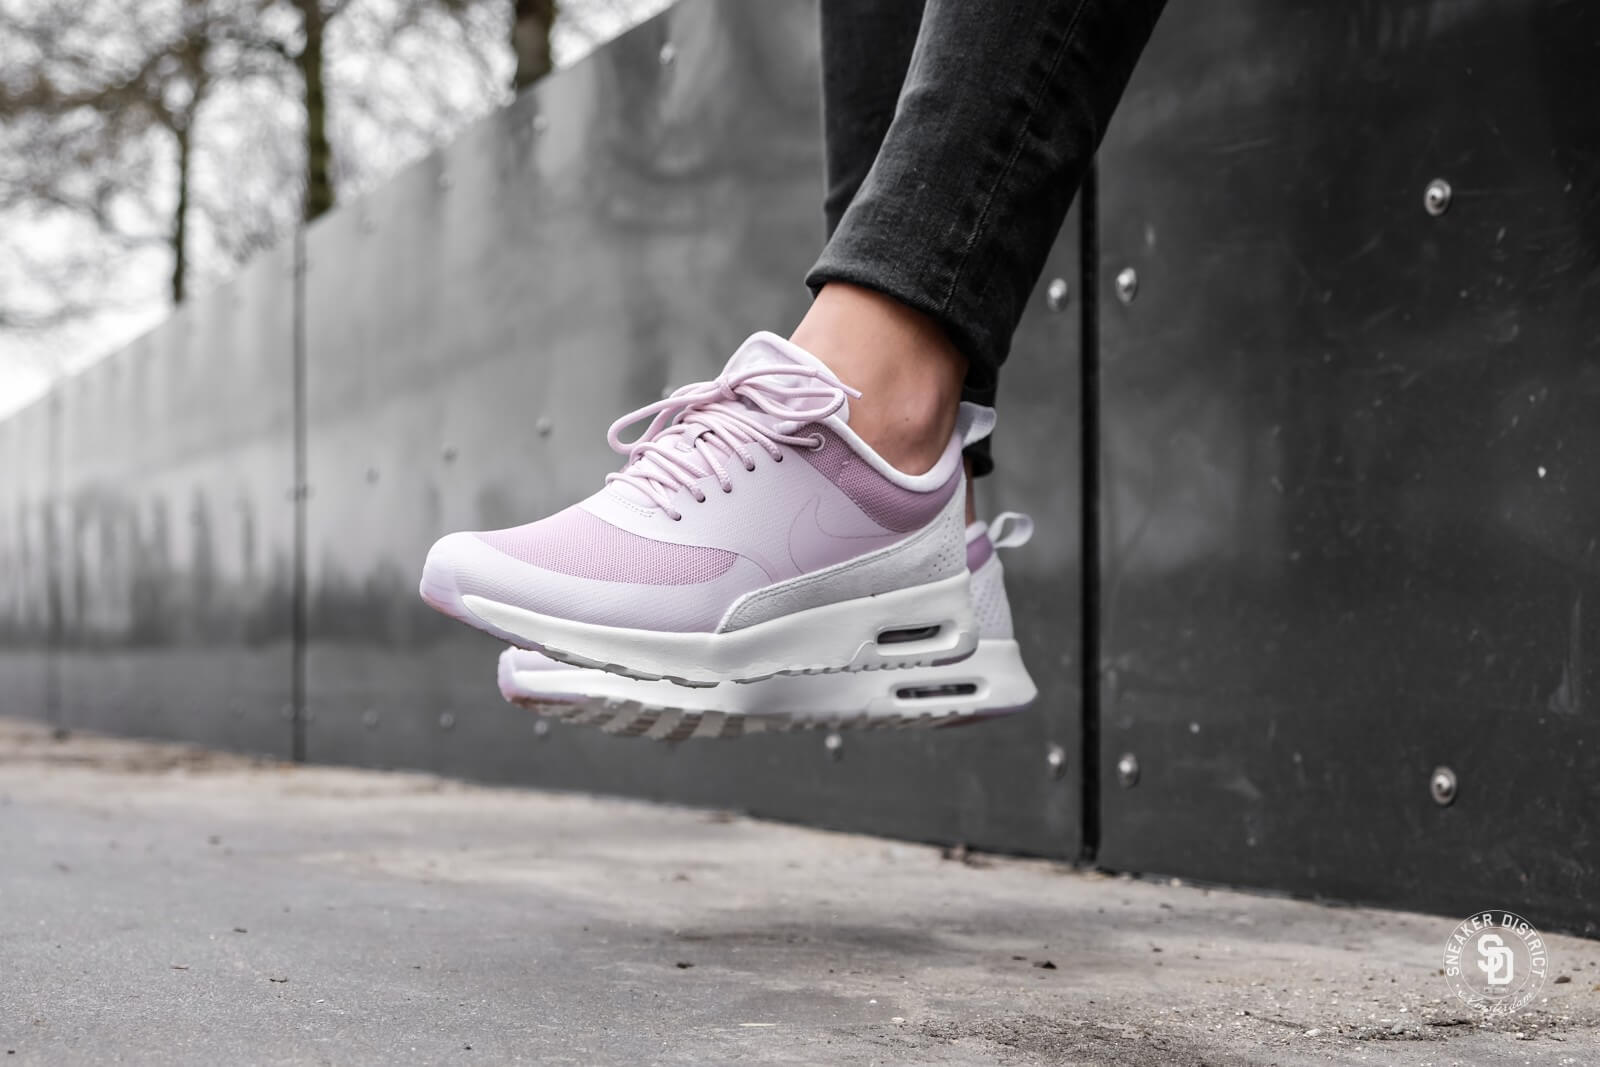 fuego Asistente Anoi  Buy > nike air max thea rose pink Limit discounts 51% OFF